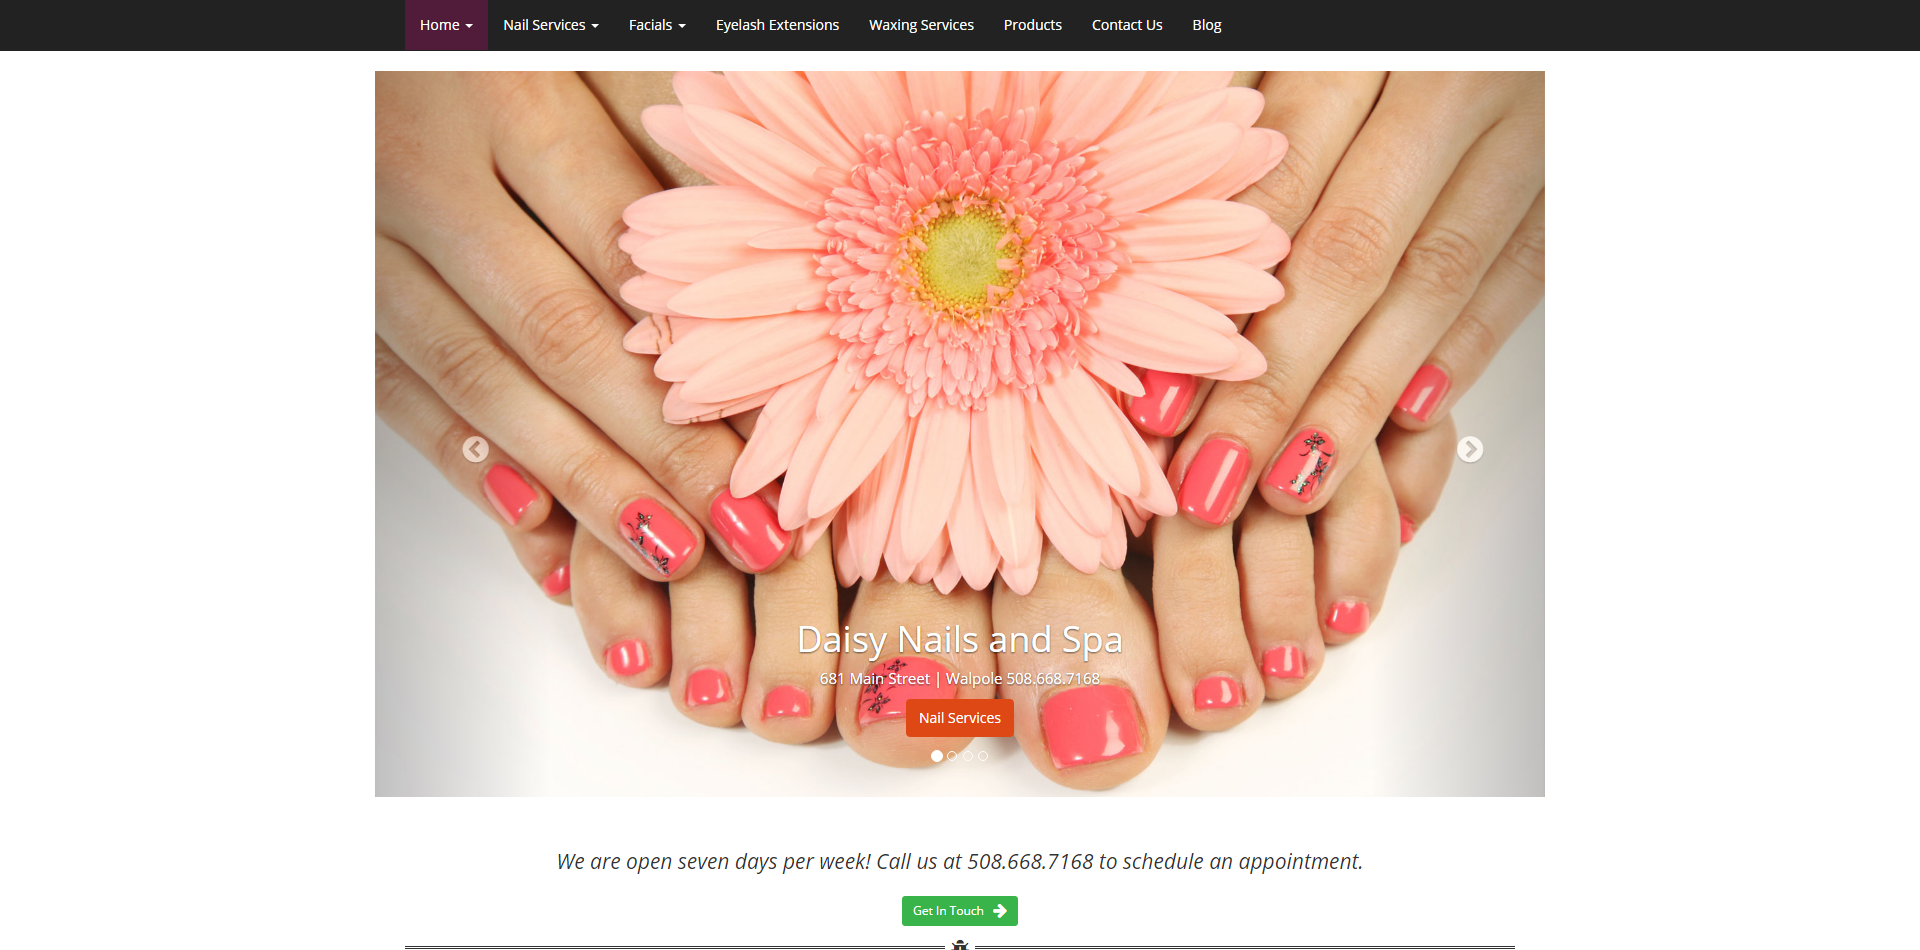 Daisy Nails and Spa - Invoke Media Group